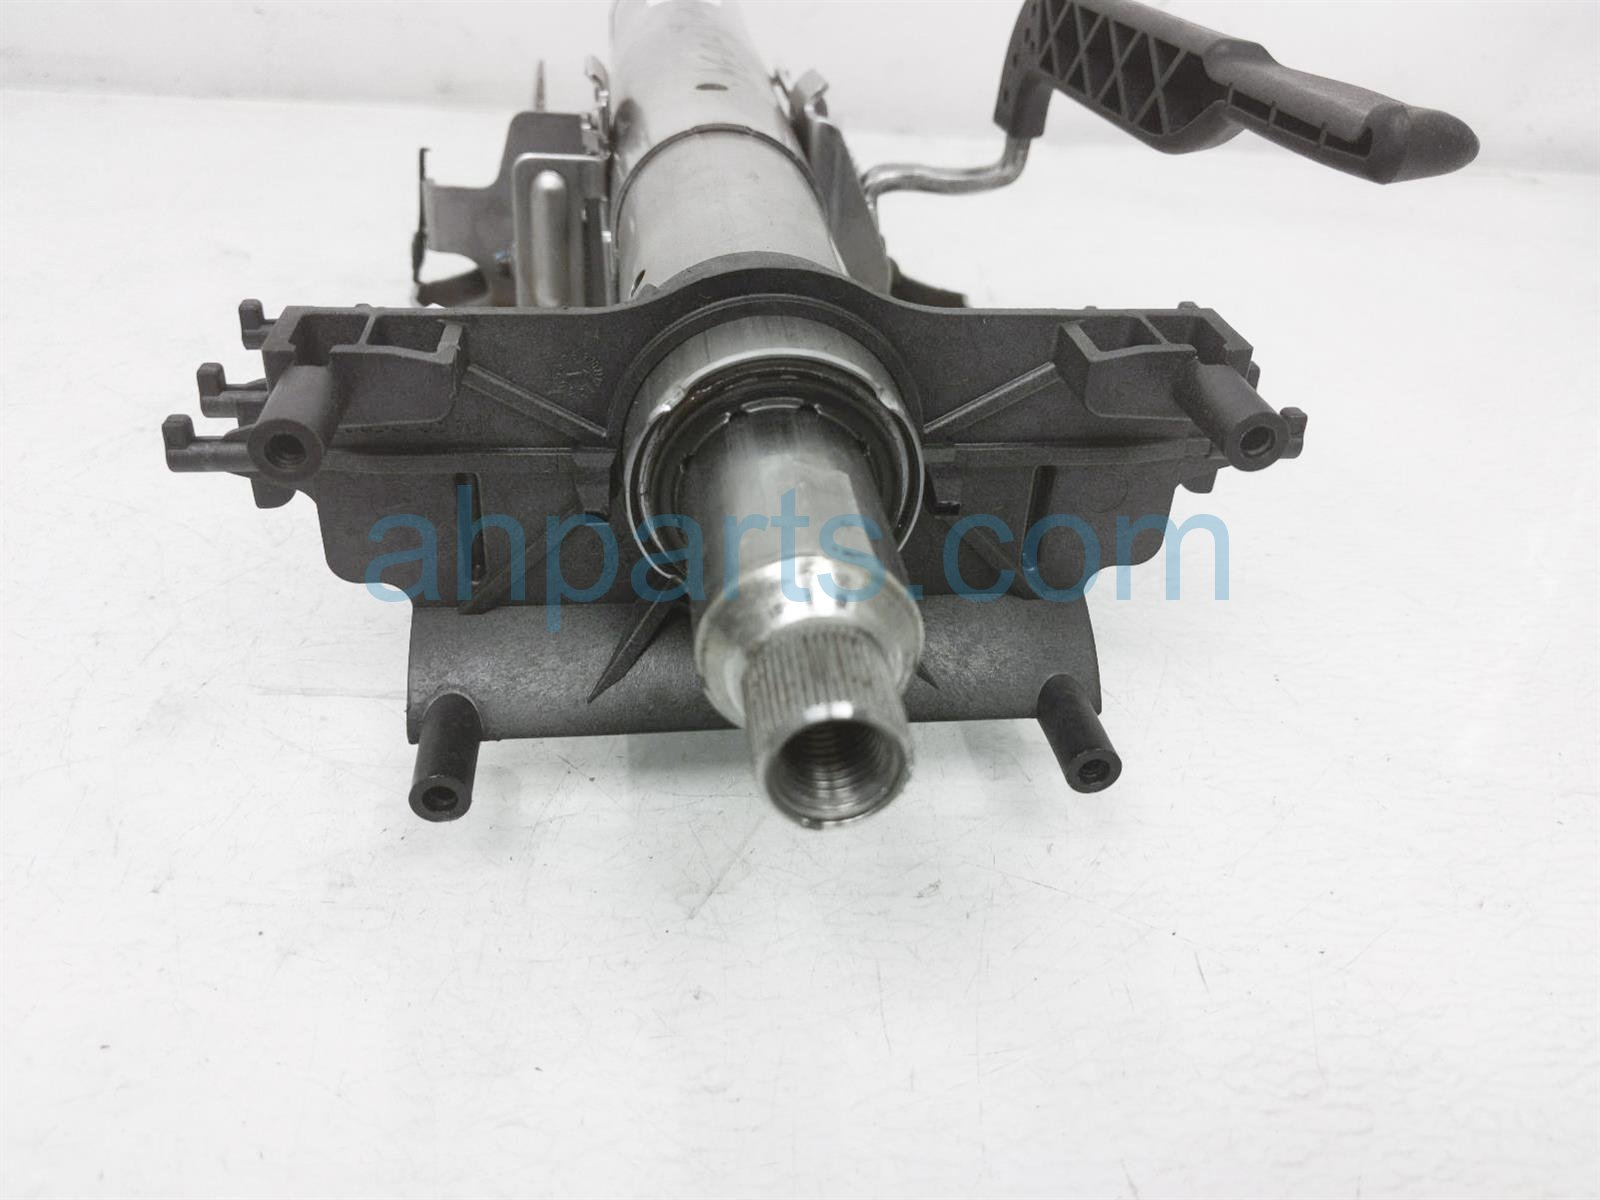 2019 BMW X2 Shaft Steering Column 32 30 6 873 699 Replacement